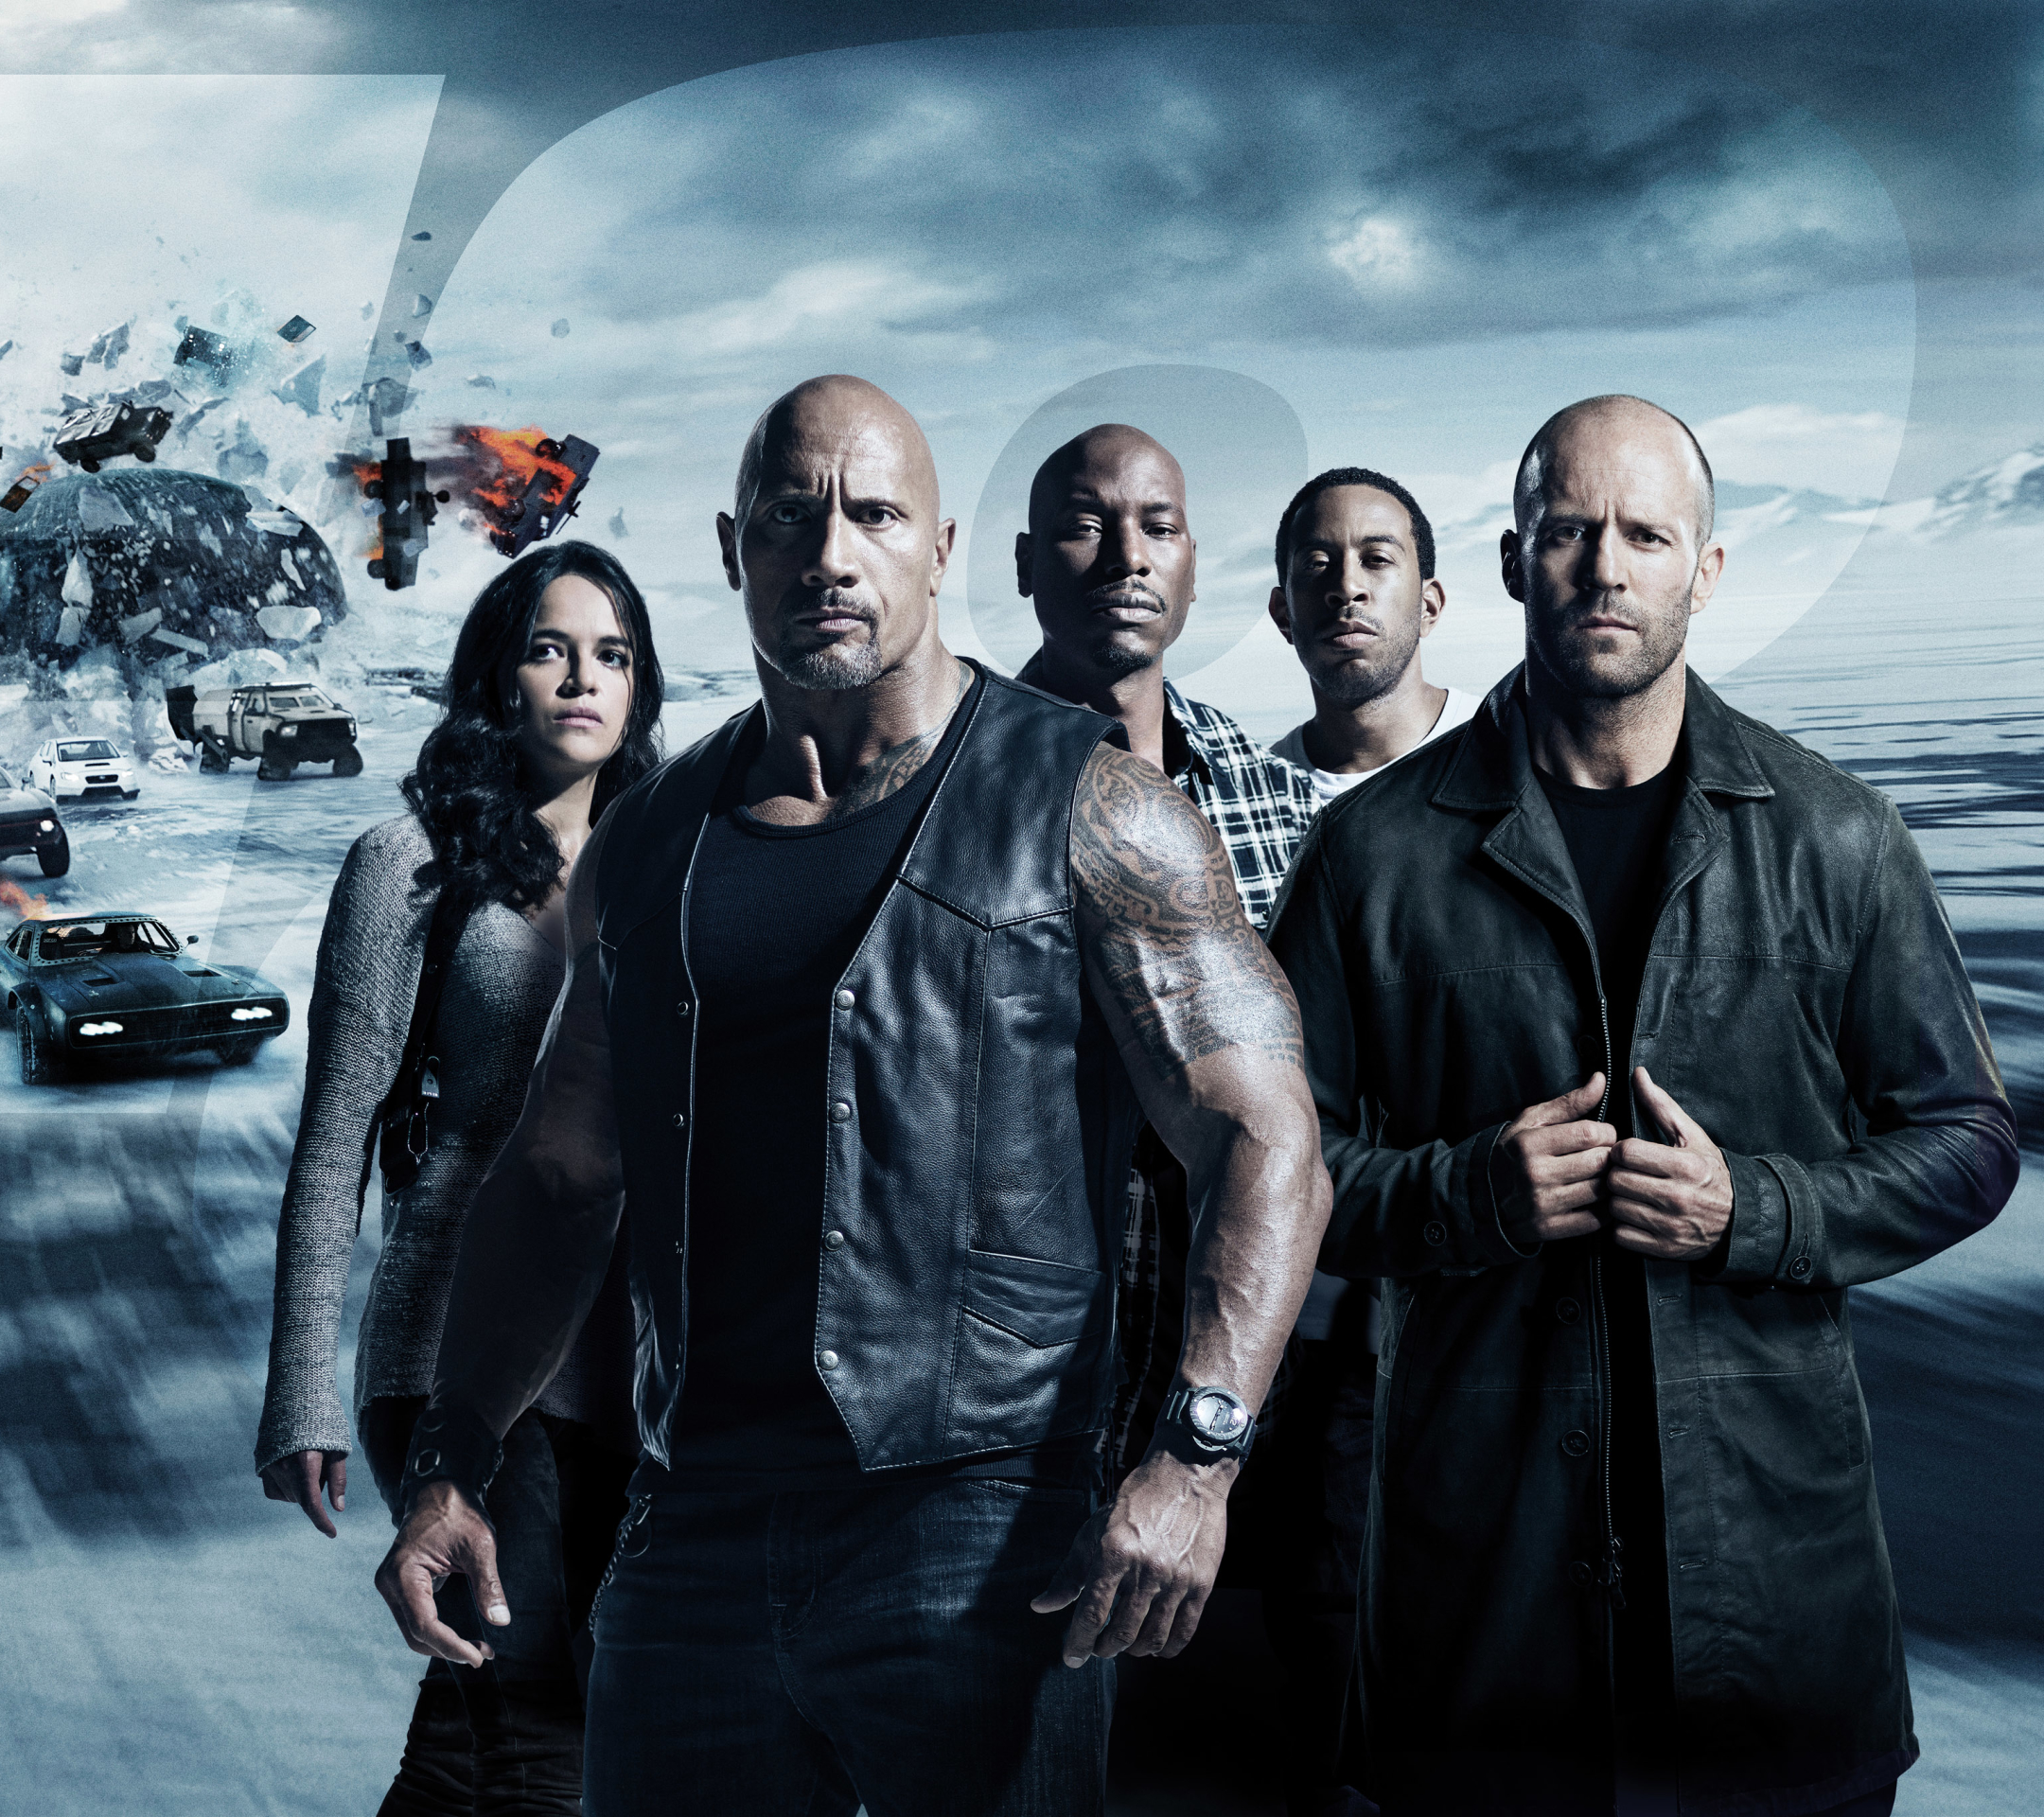 Movie The Fate Of The Furious 2160x1920 Wallpaper Id 677709